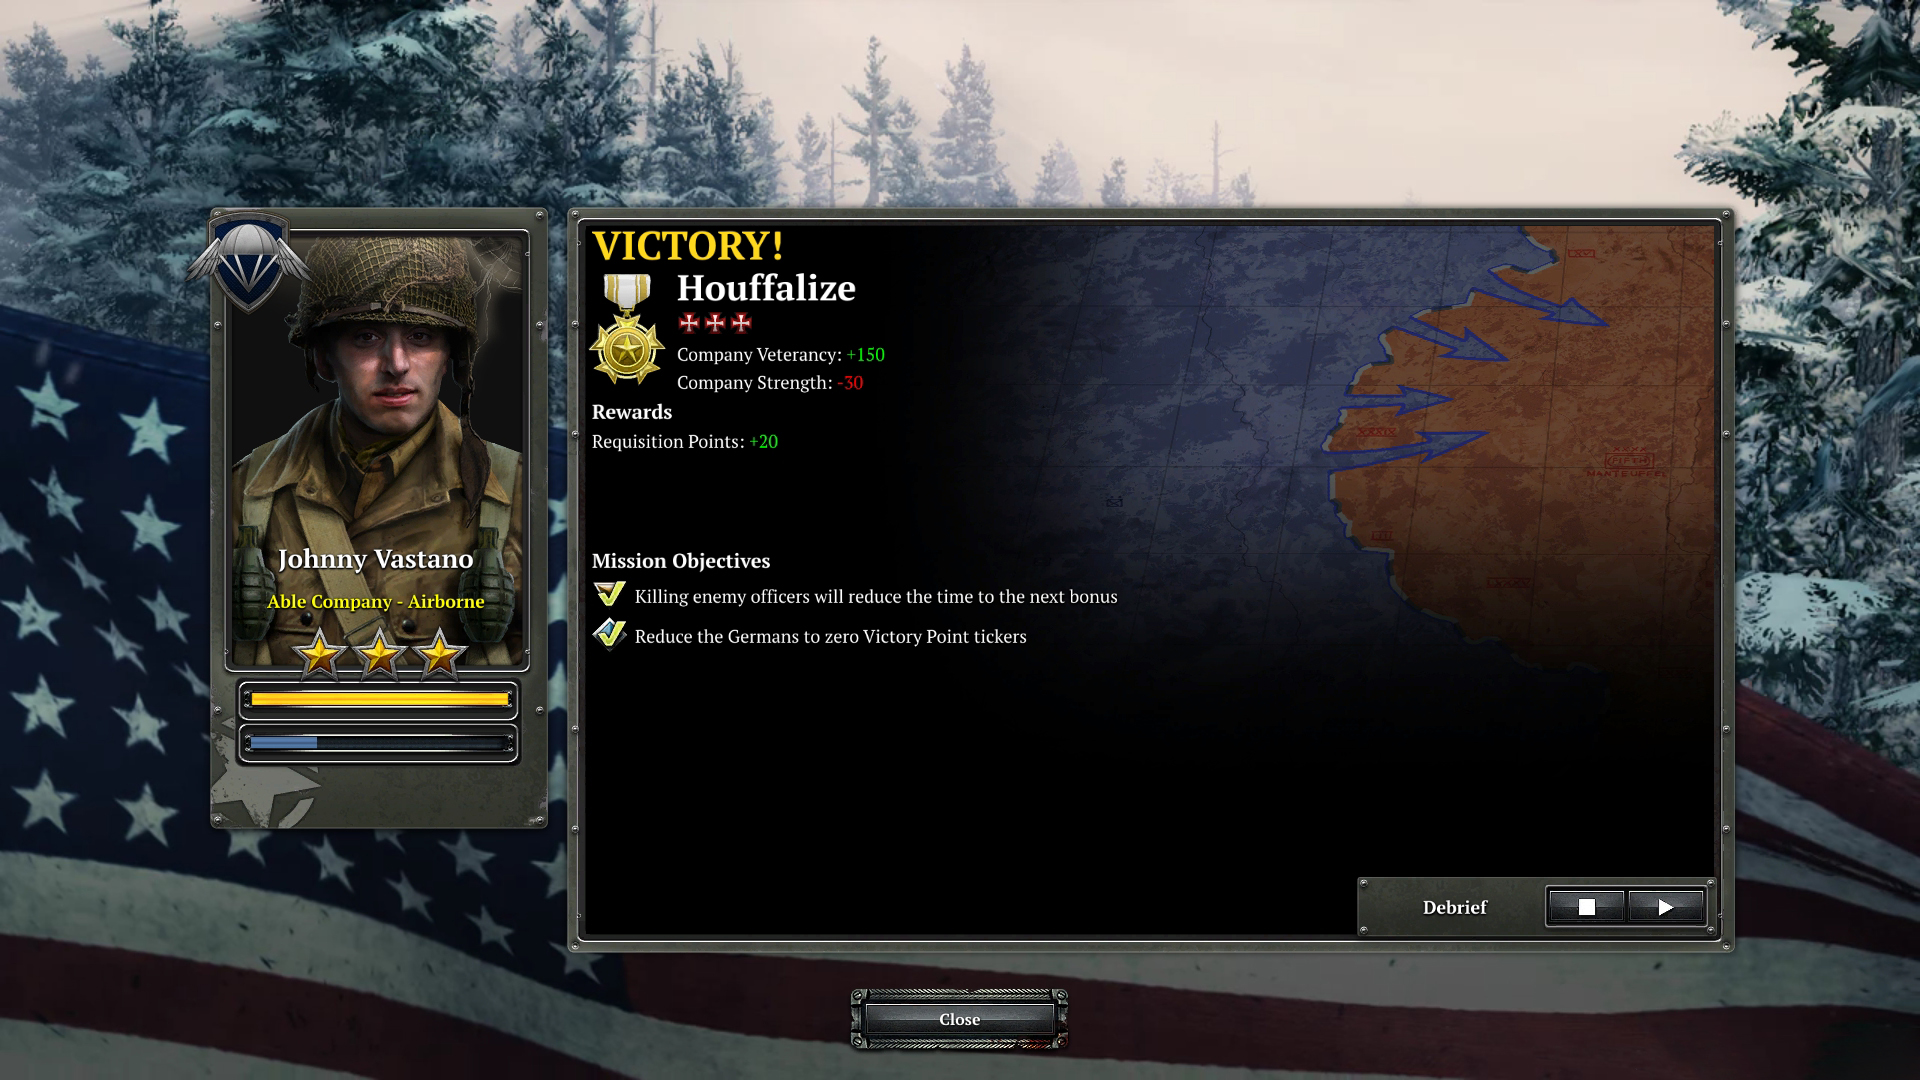 coh2 aa houffalize postmission - Company of Heroes 2: Ardennes Assault Review